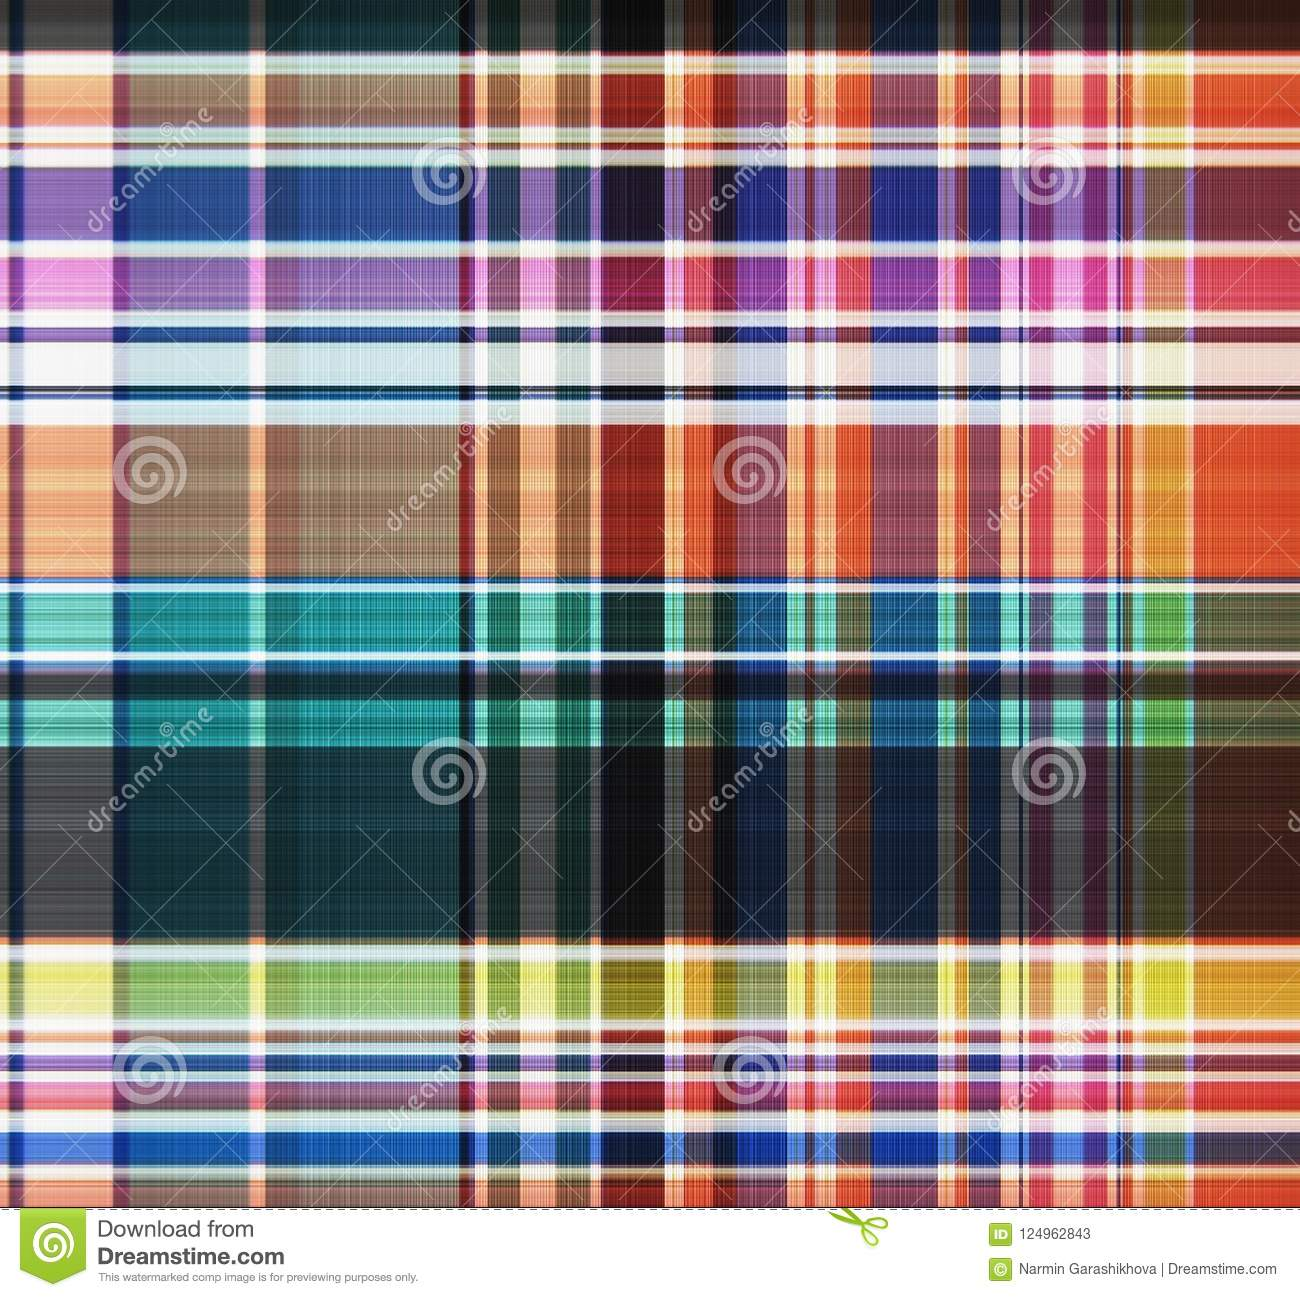 Tartan, plaid Seamless pattern. Textile design. Clothing pattern Wallpaper,wrapping paper,textile.Fashion illustration background